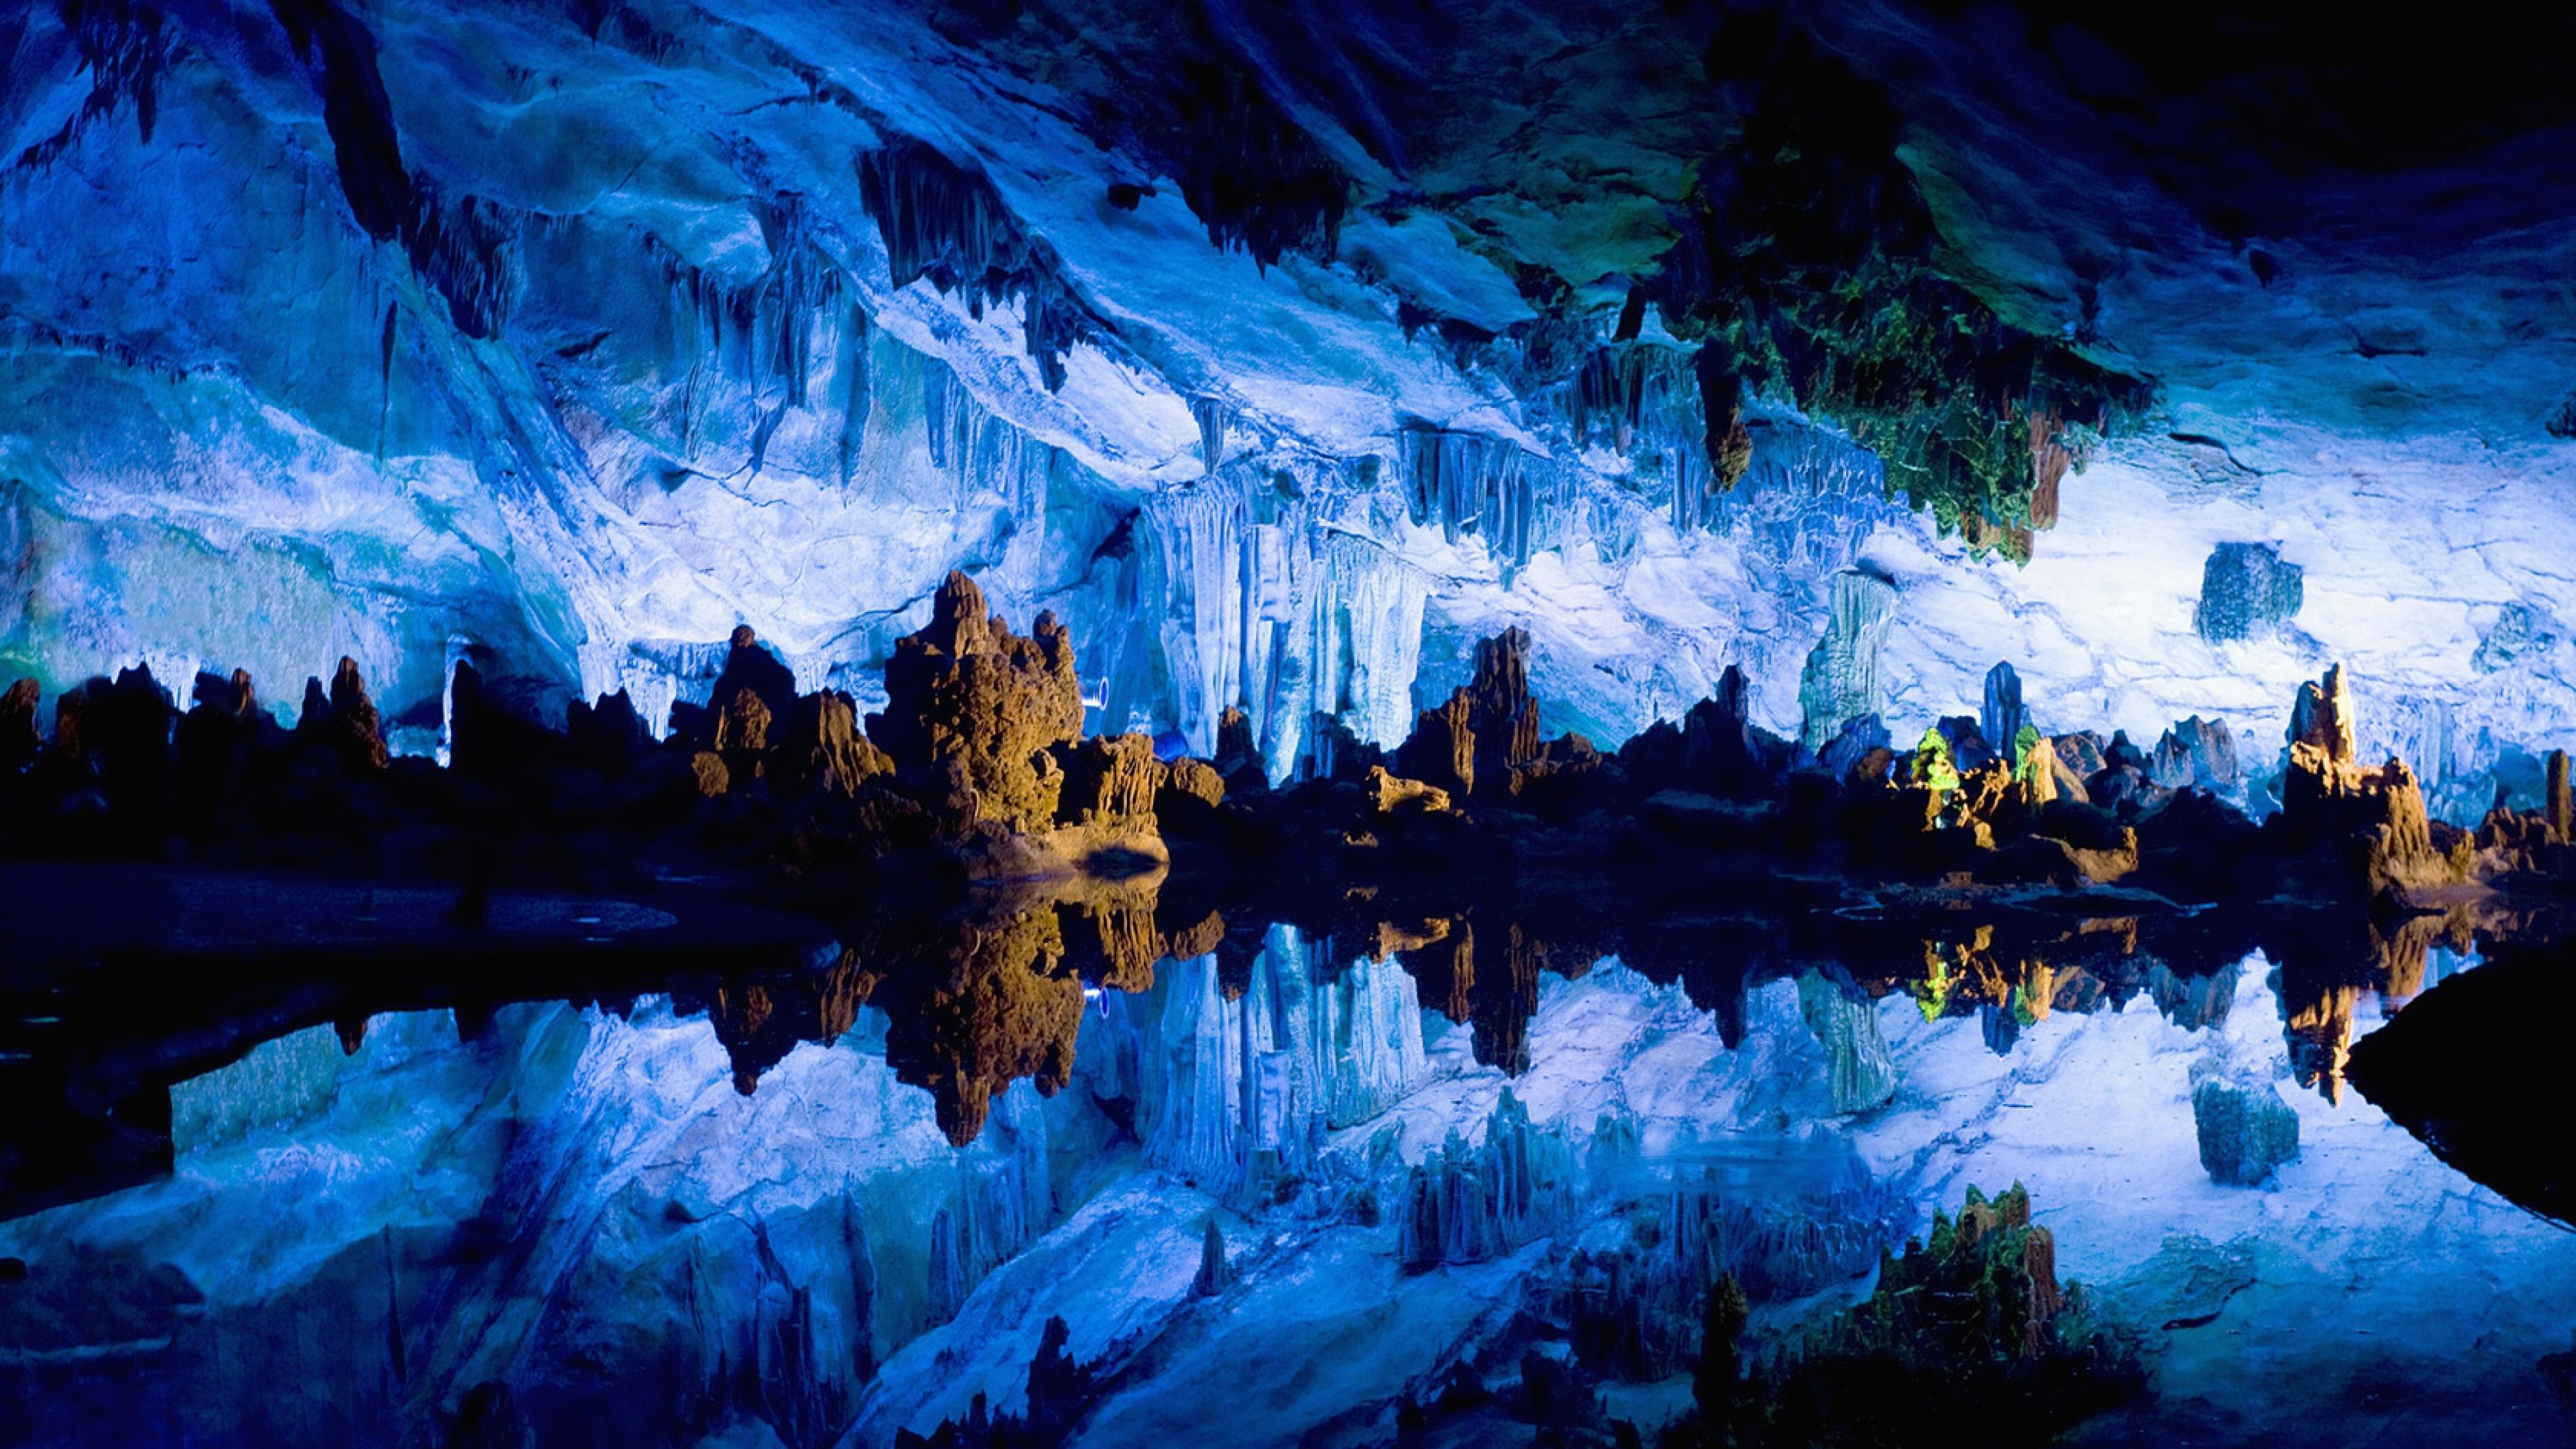 Wallpaper Cave: Caves With Water Wallpapers